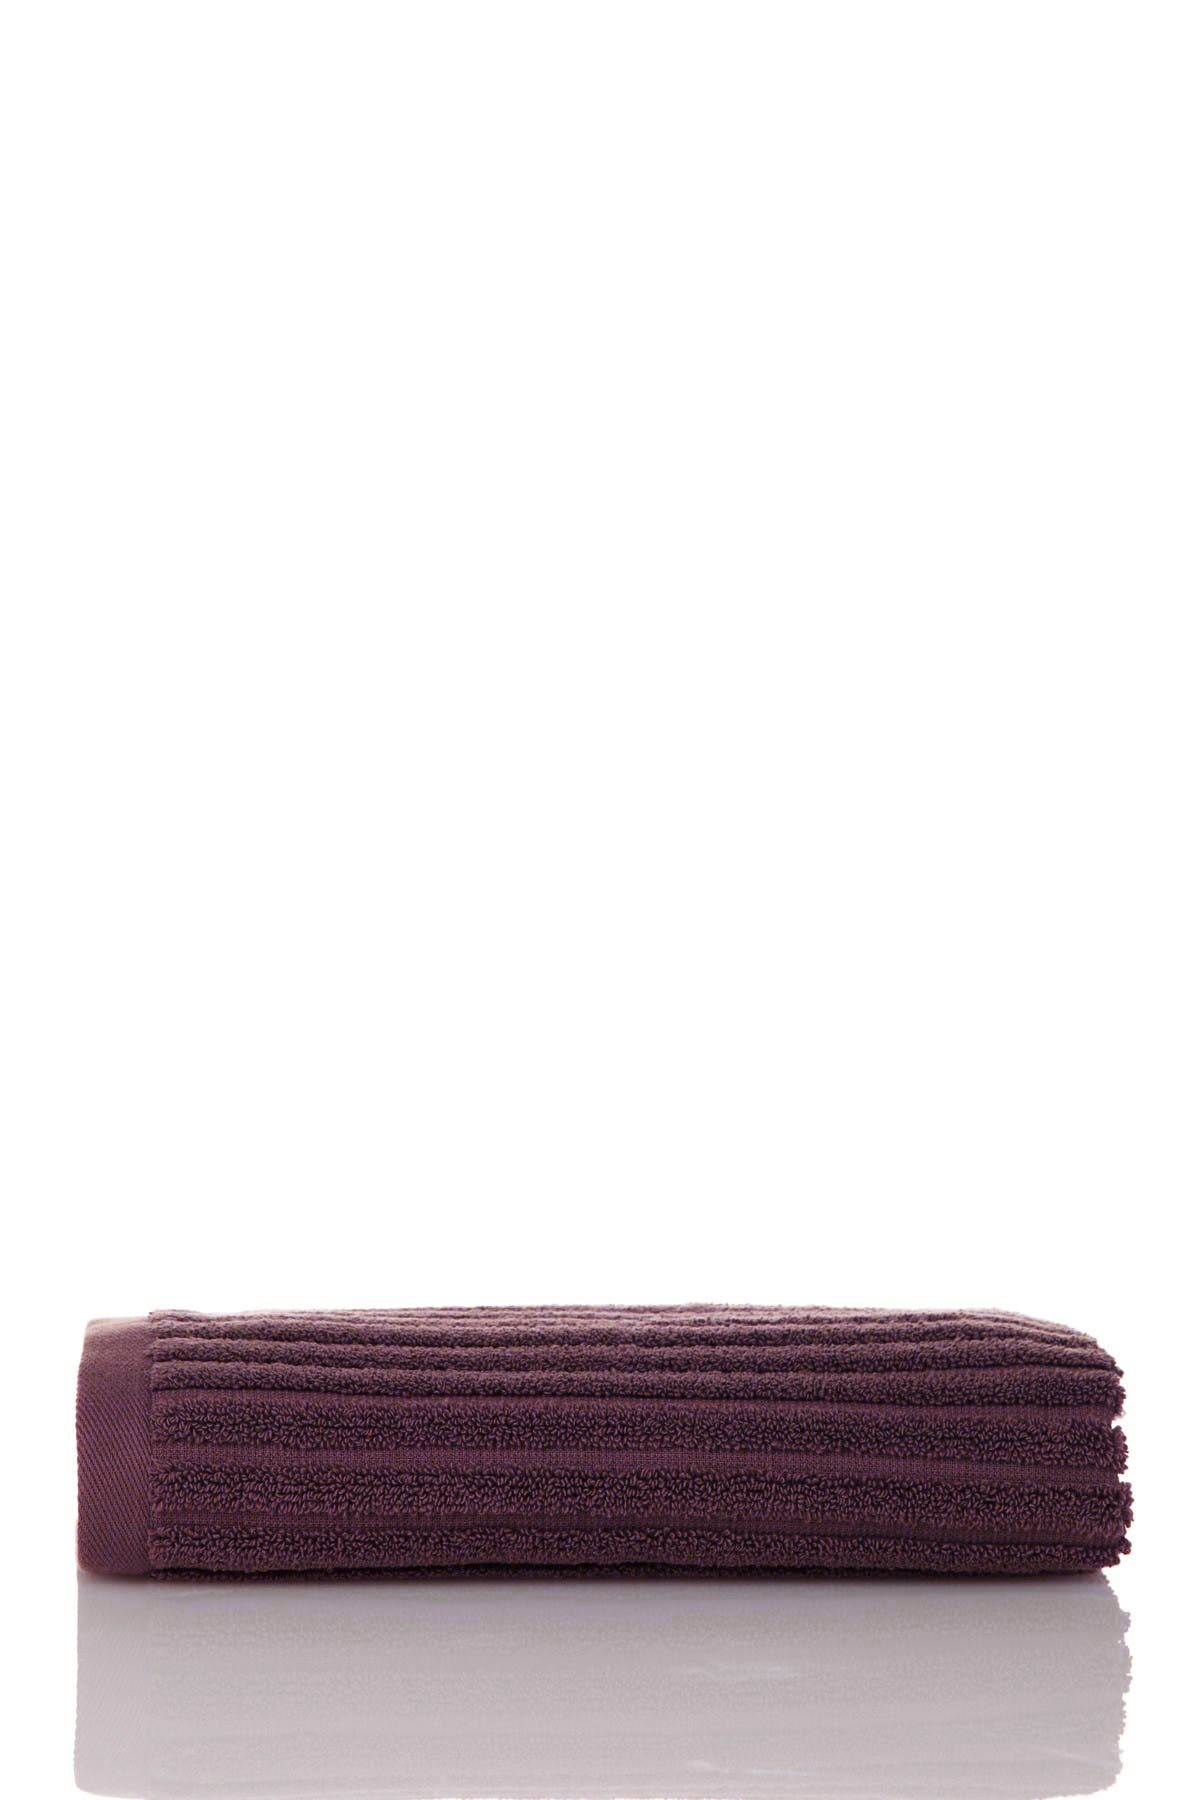 """Image of Nordstrom at Home Modern Rib Hand Towel - 28"""" x 18"""""""